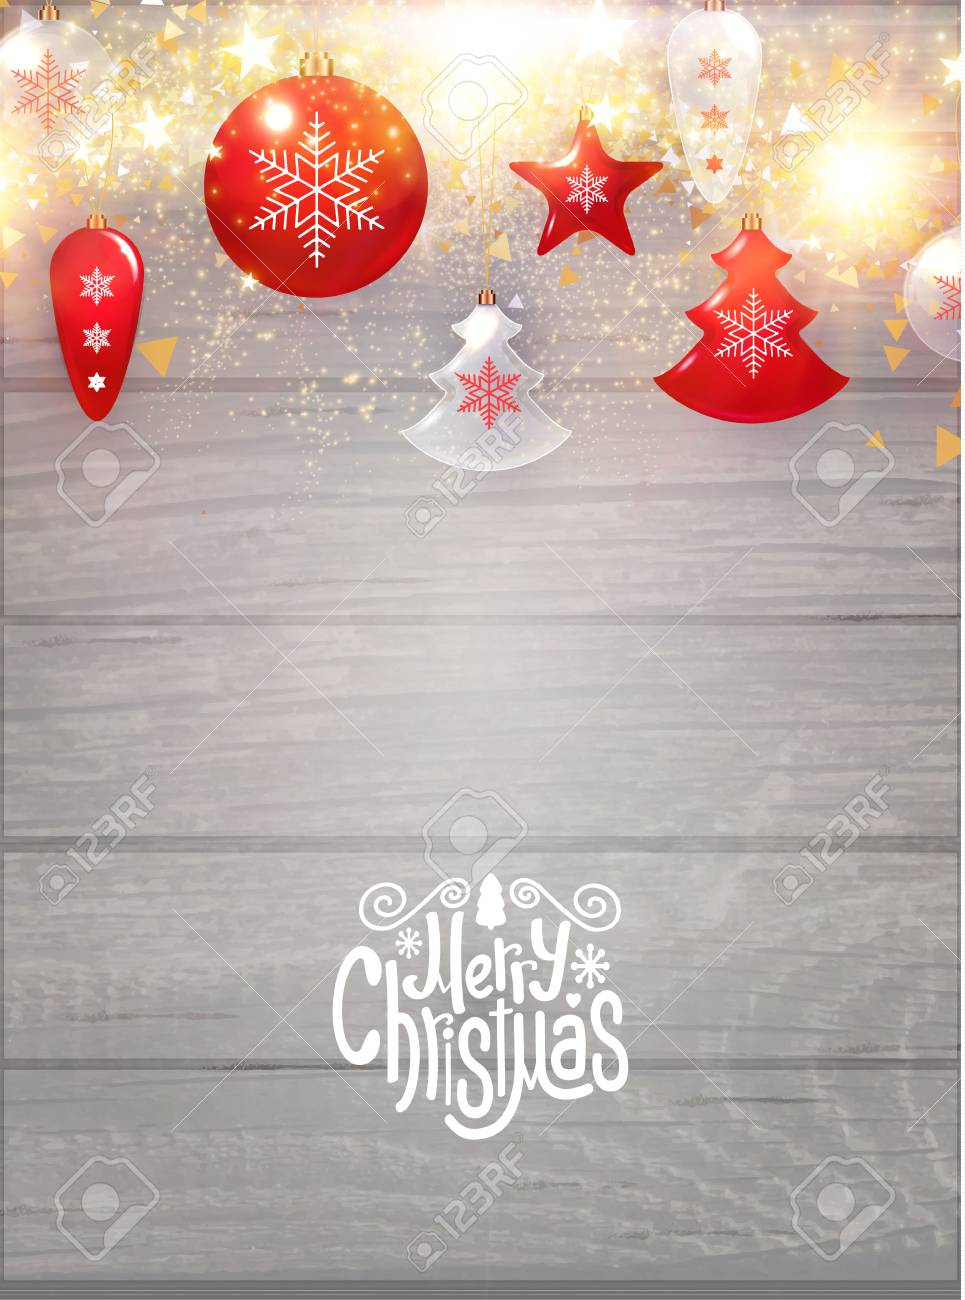 Merry Christmas Background.Merry Christmas Background With Red And Transparent Glass Toys